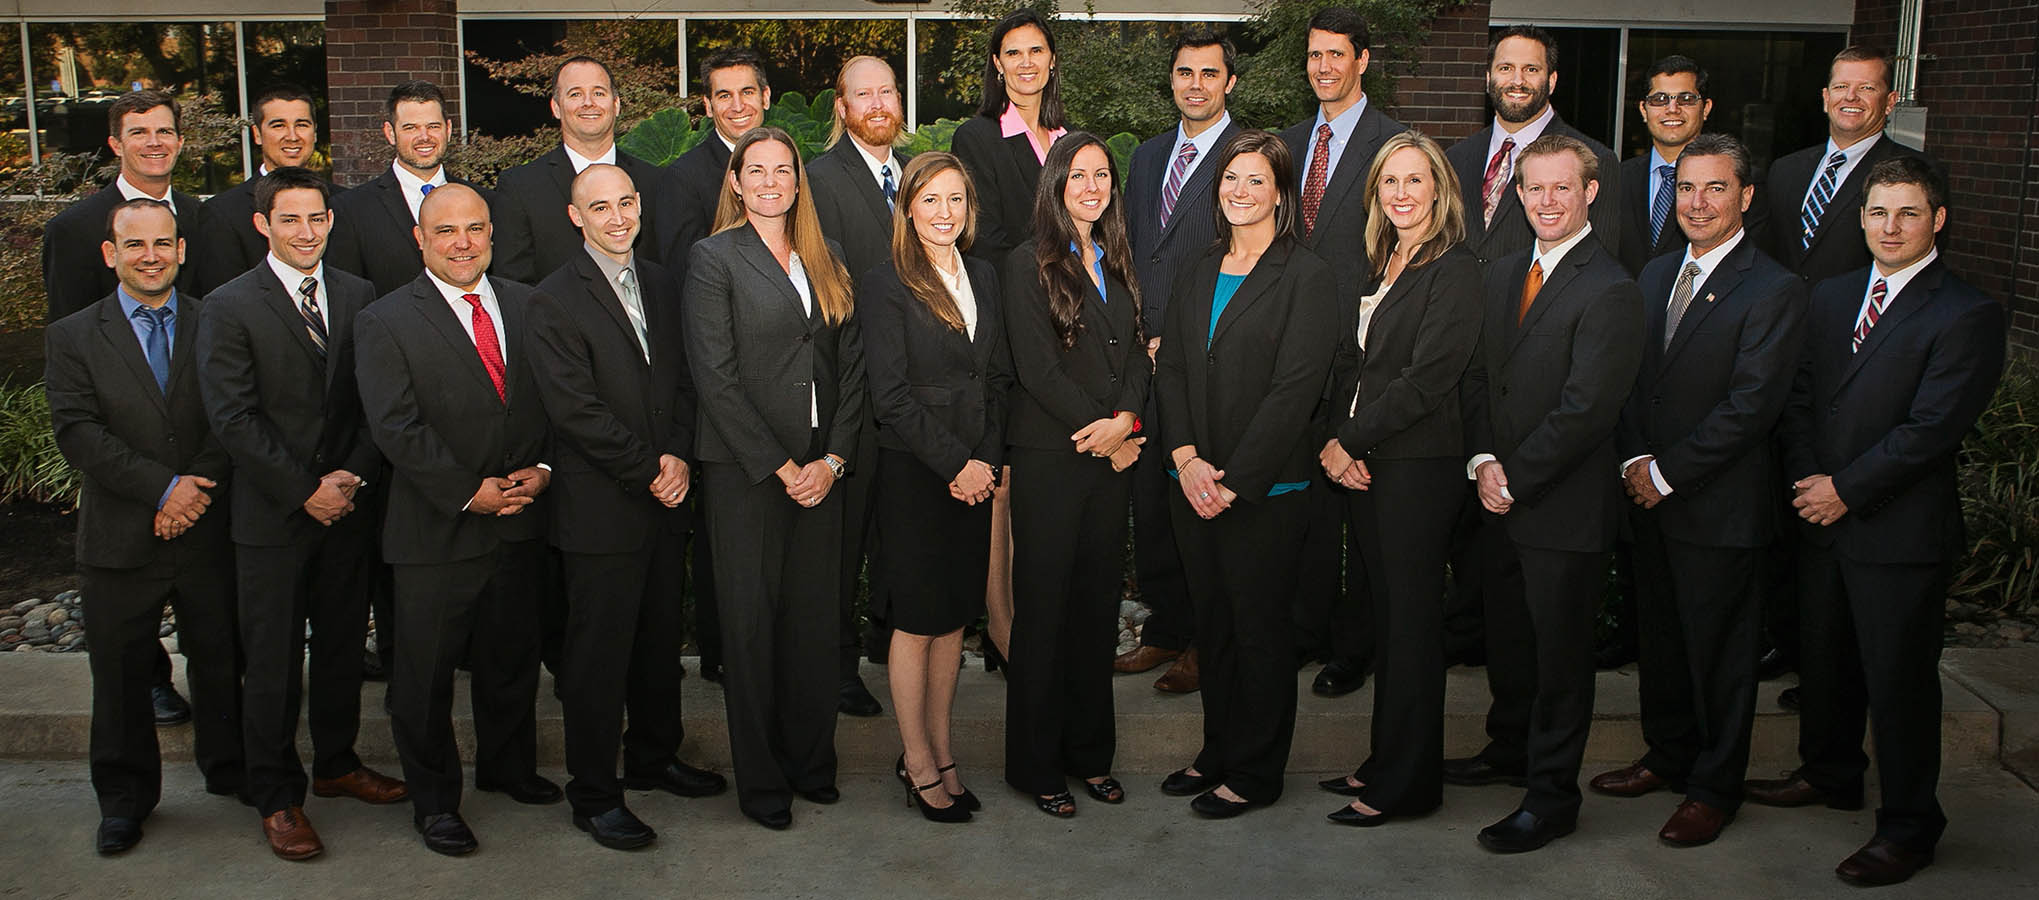 California Ag Leadership Program - Class 44 (Feb 2015)